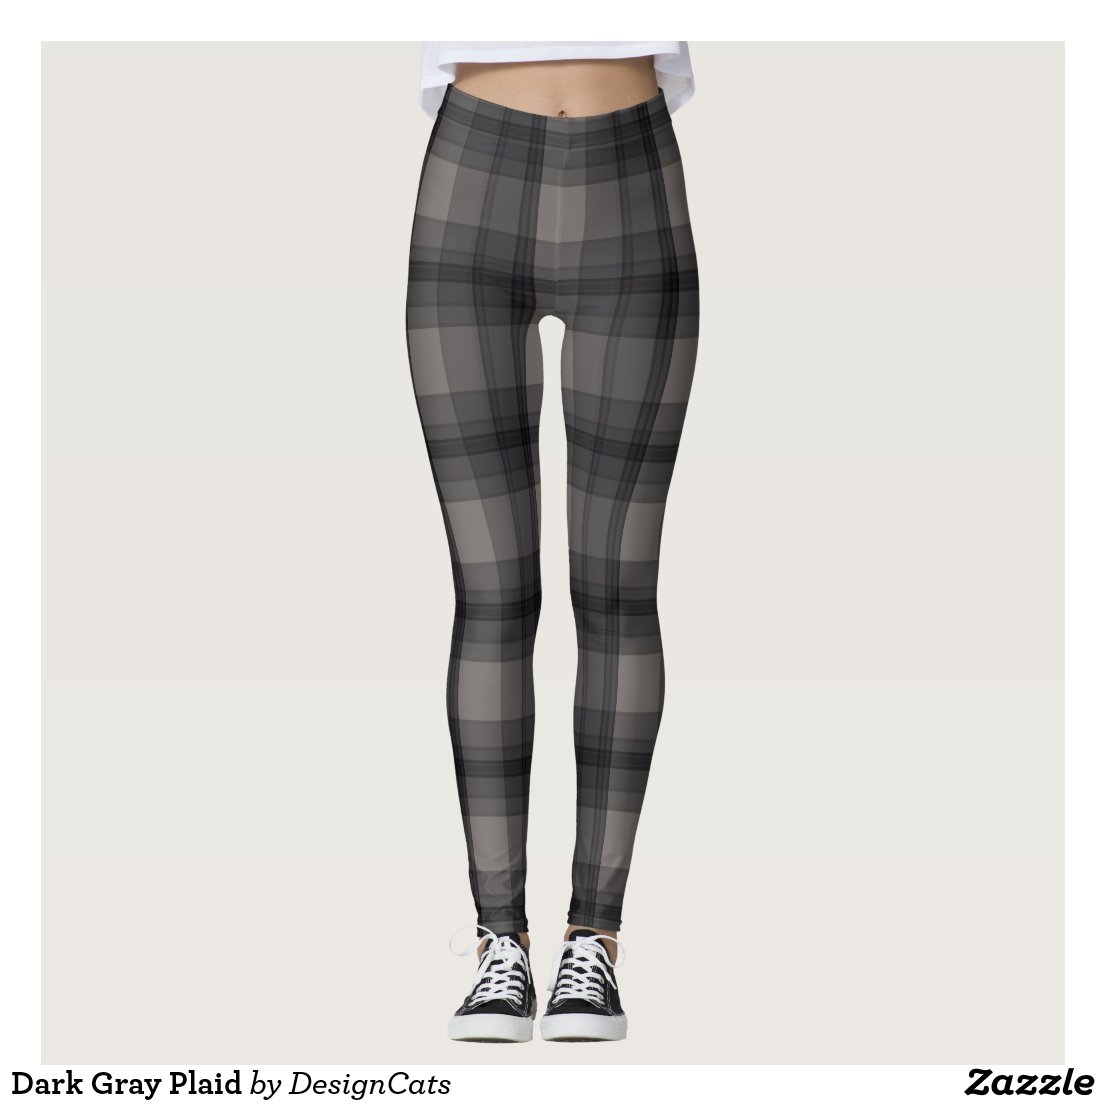 Dark Grey Plaid Leggings